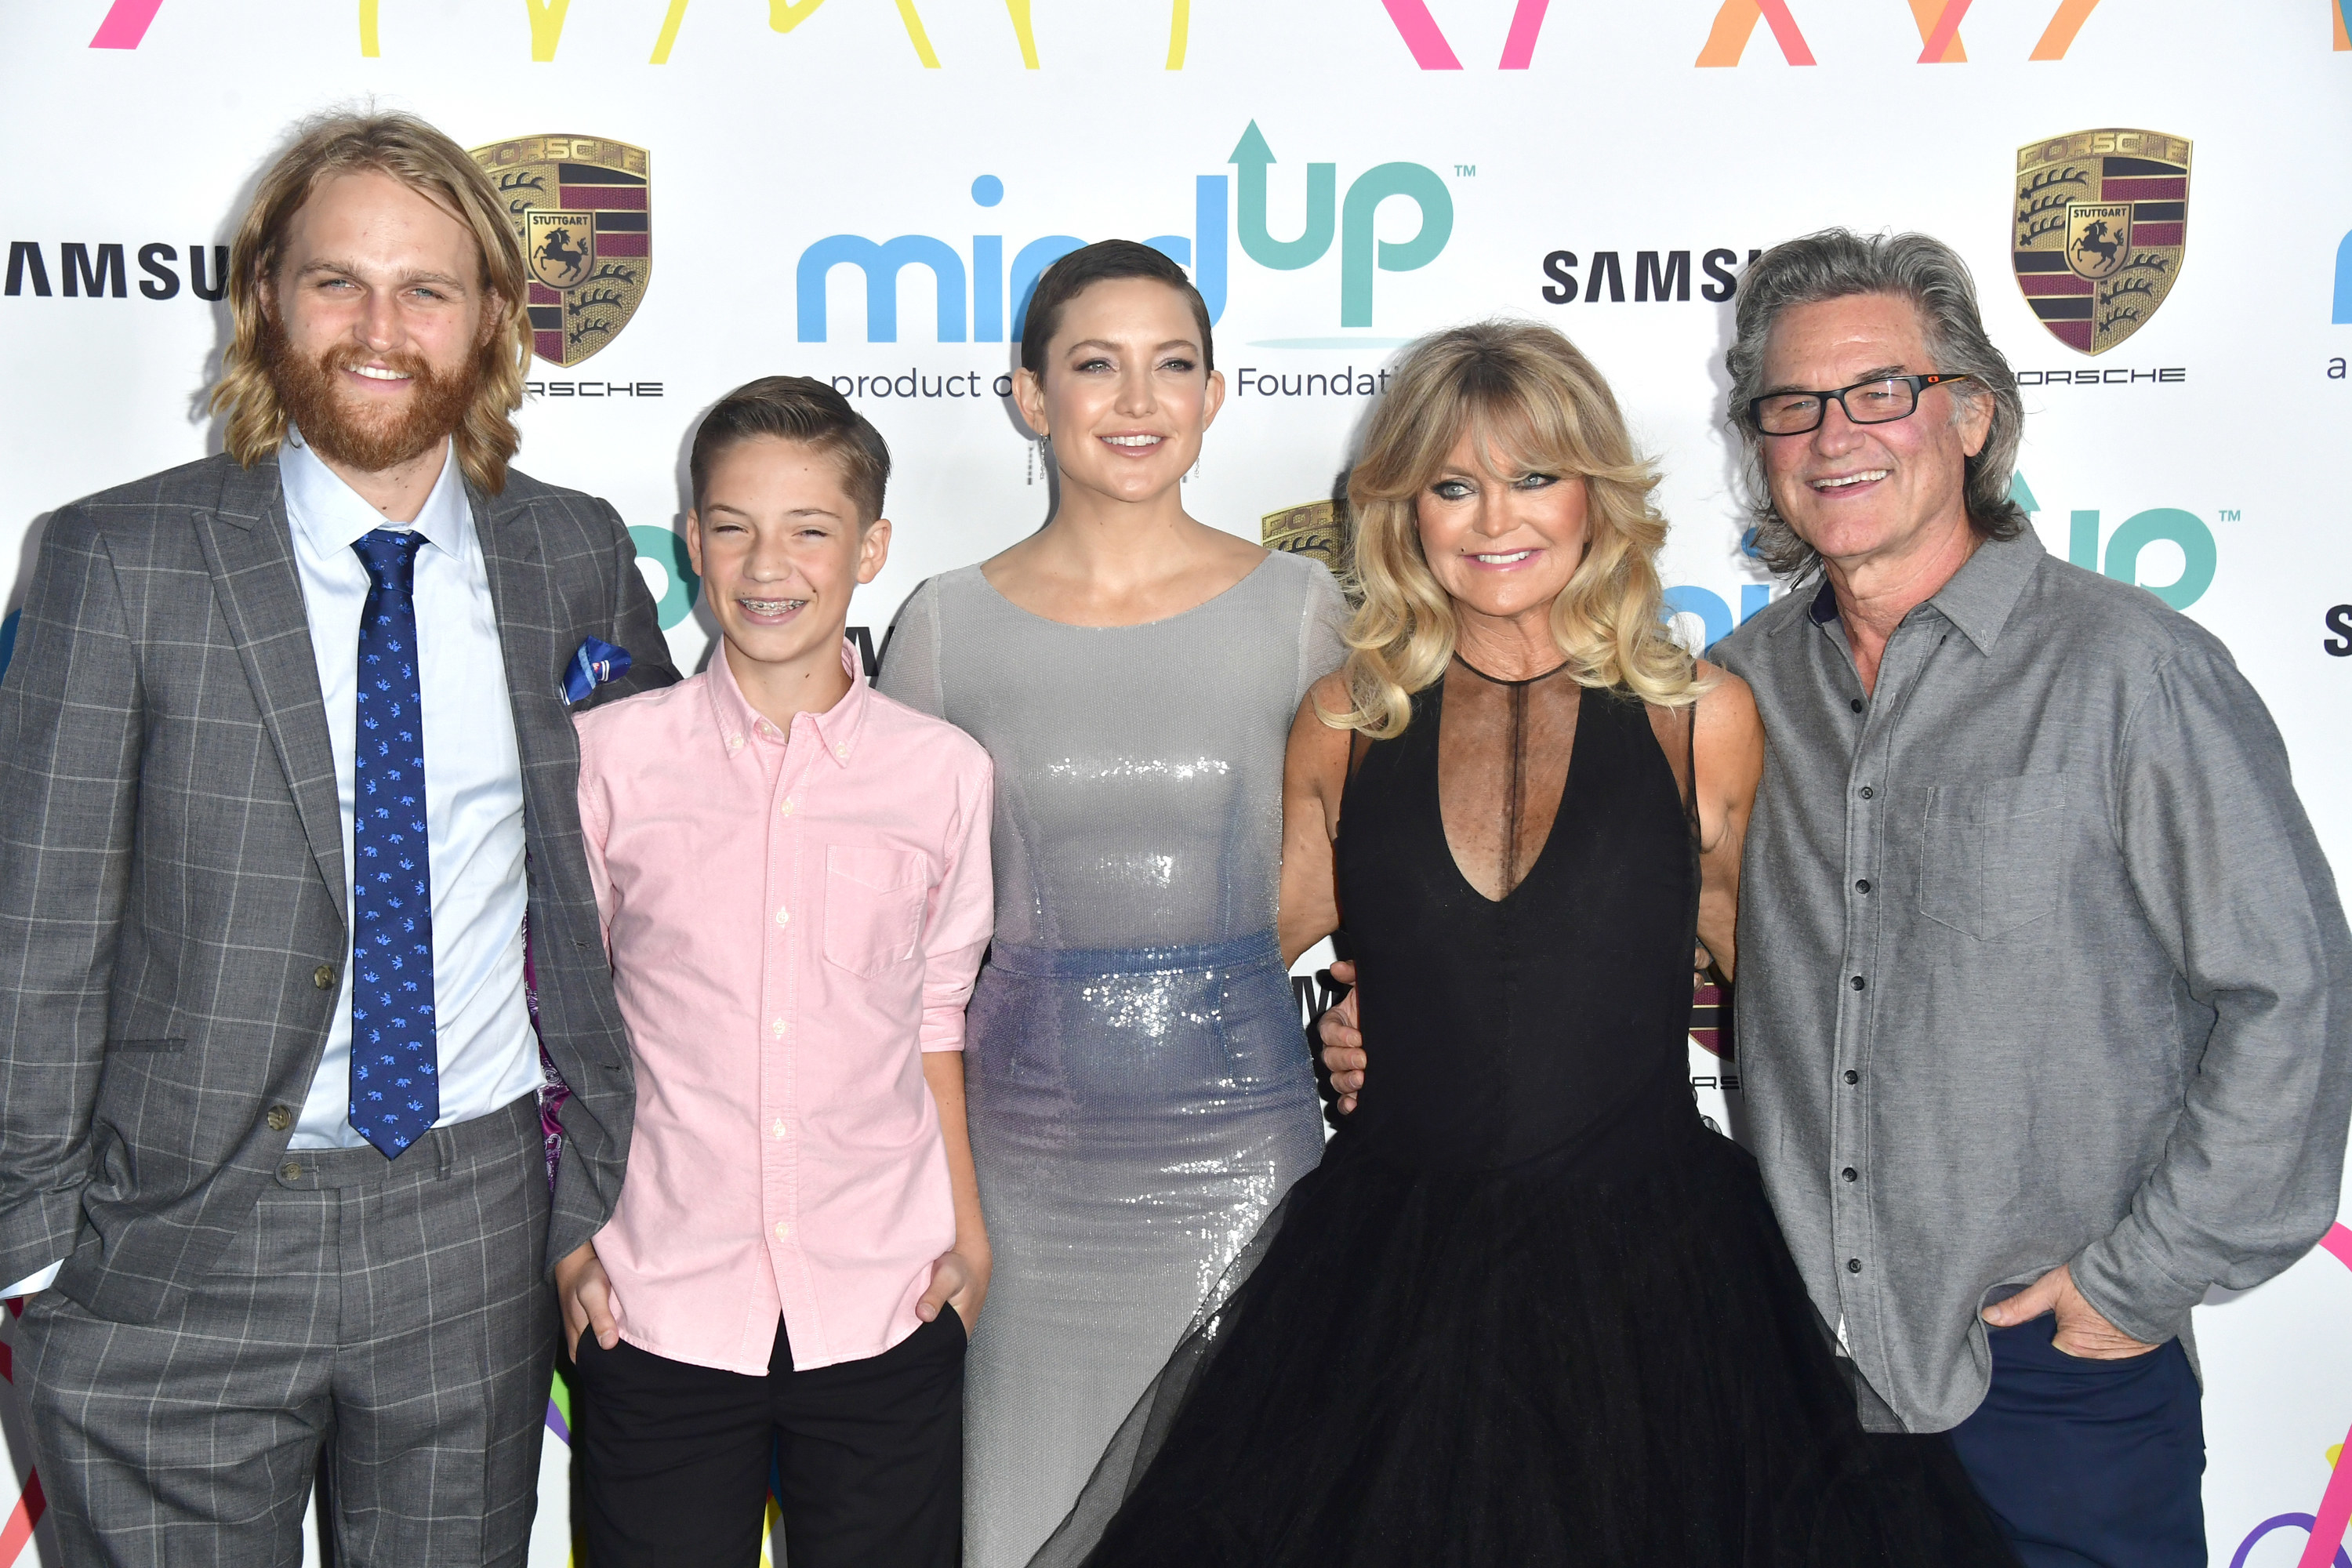 Kate posing at a red carpet event with her parents Goldie Hawn and Kurt Russell, her brother Wyatt Russel, Ryder